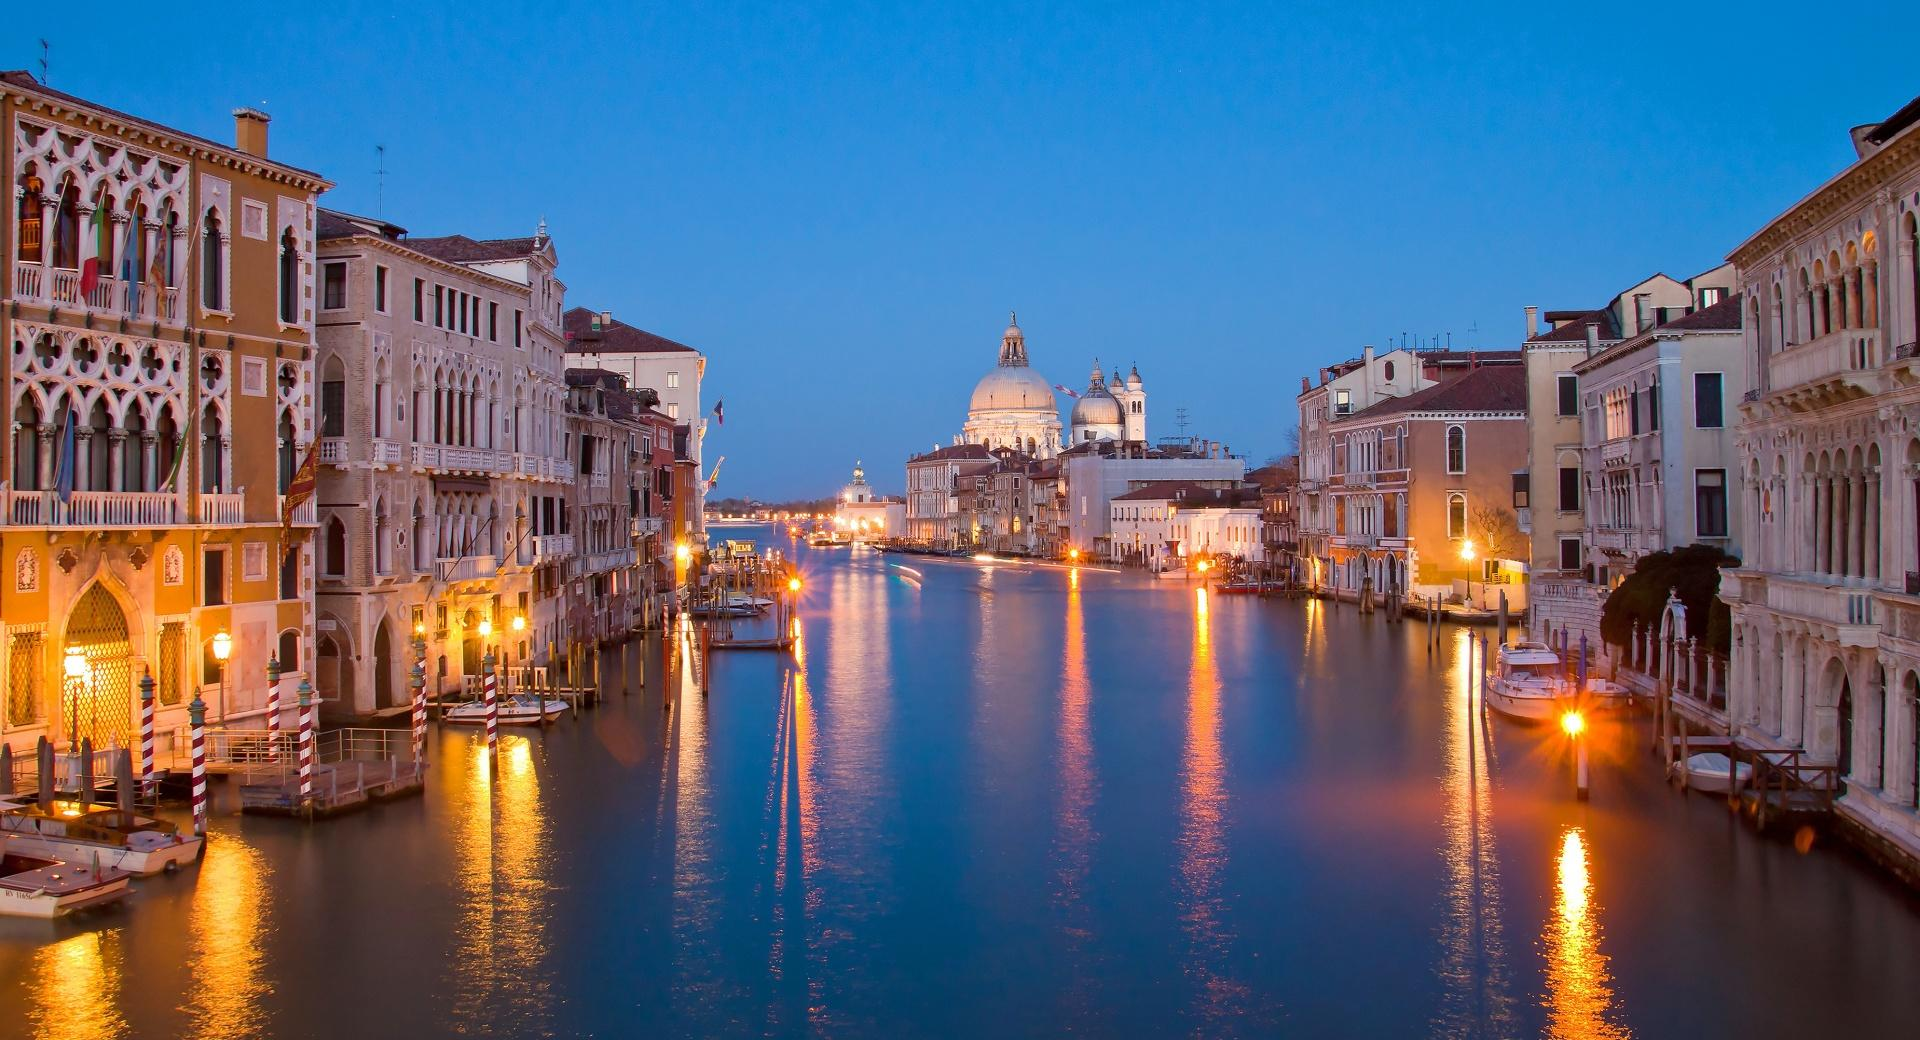 Venice At Night wallpapers HD quality